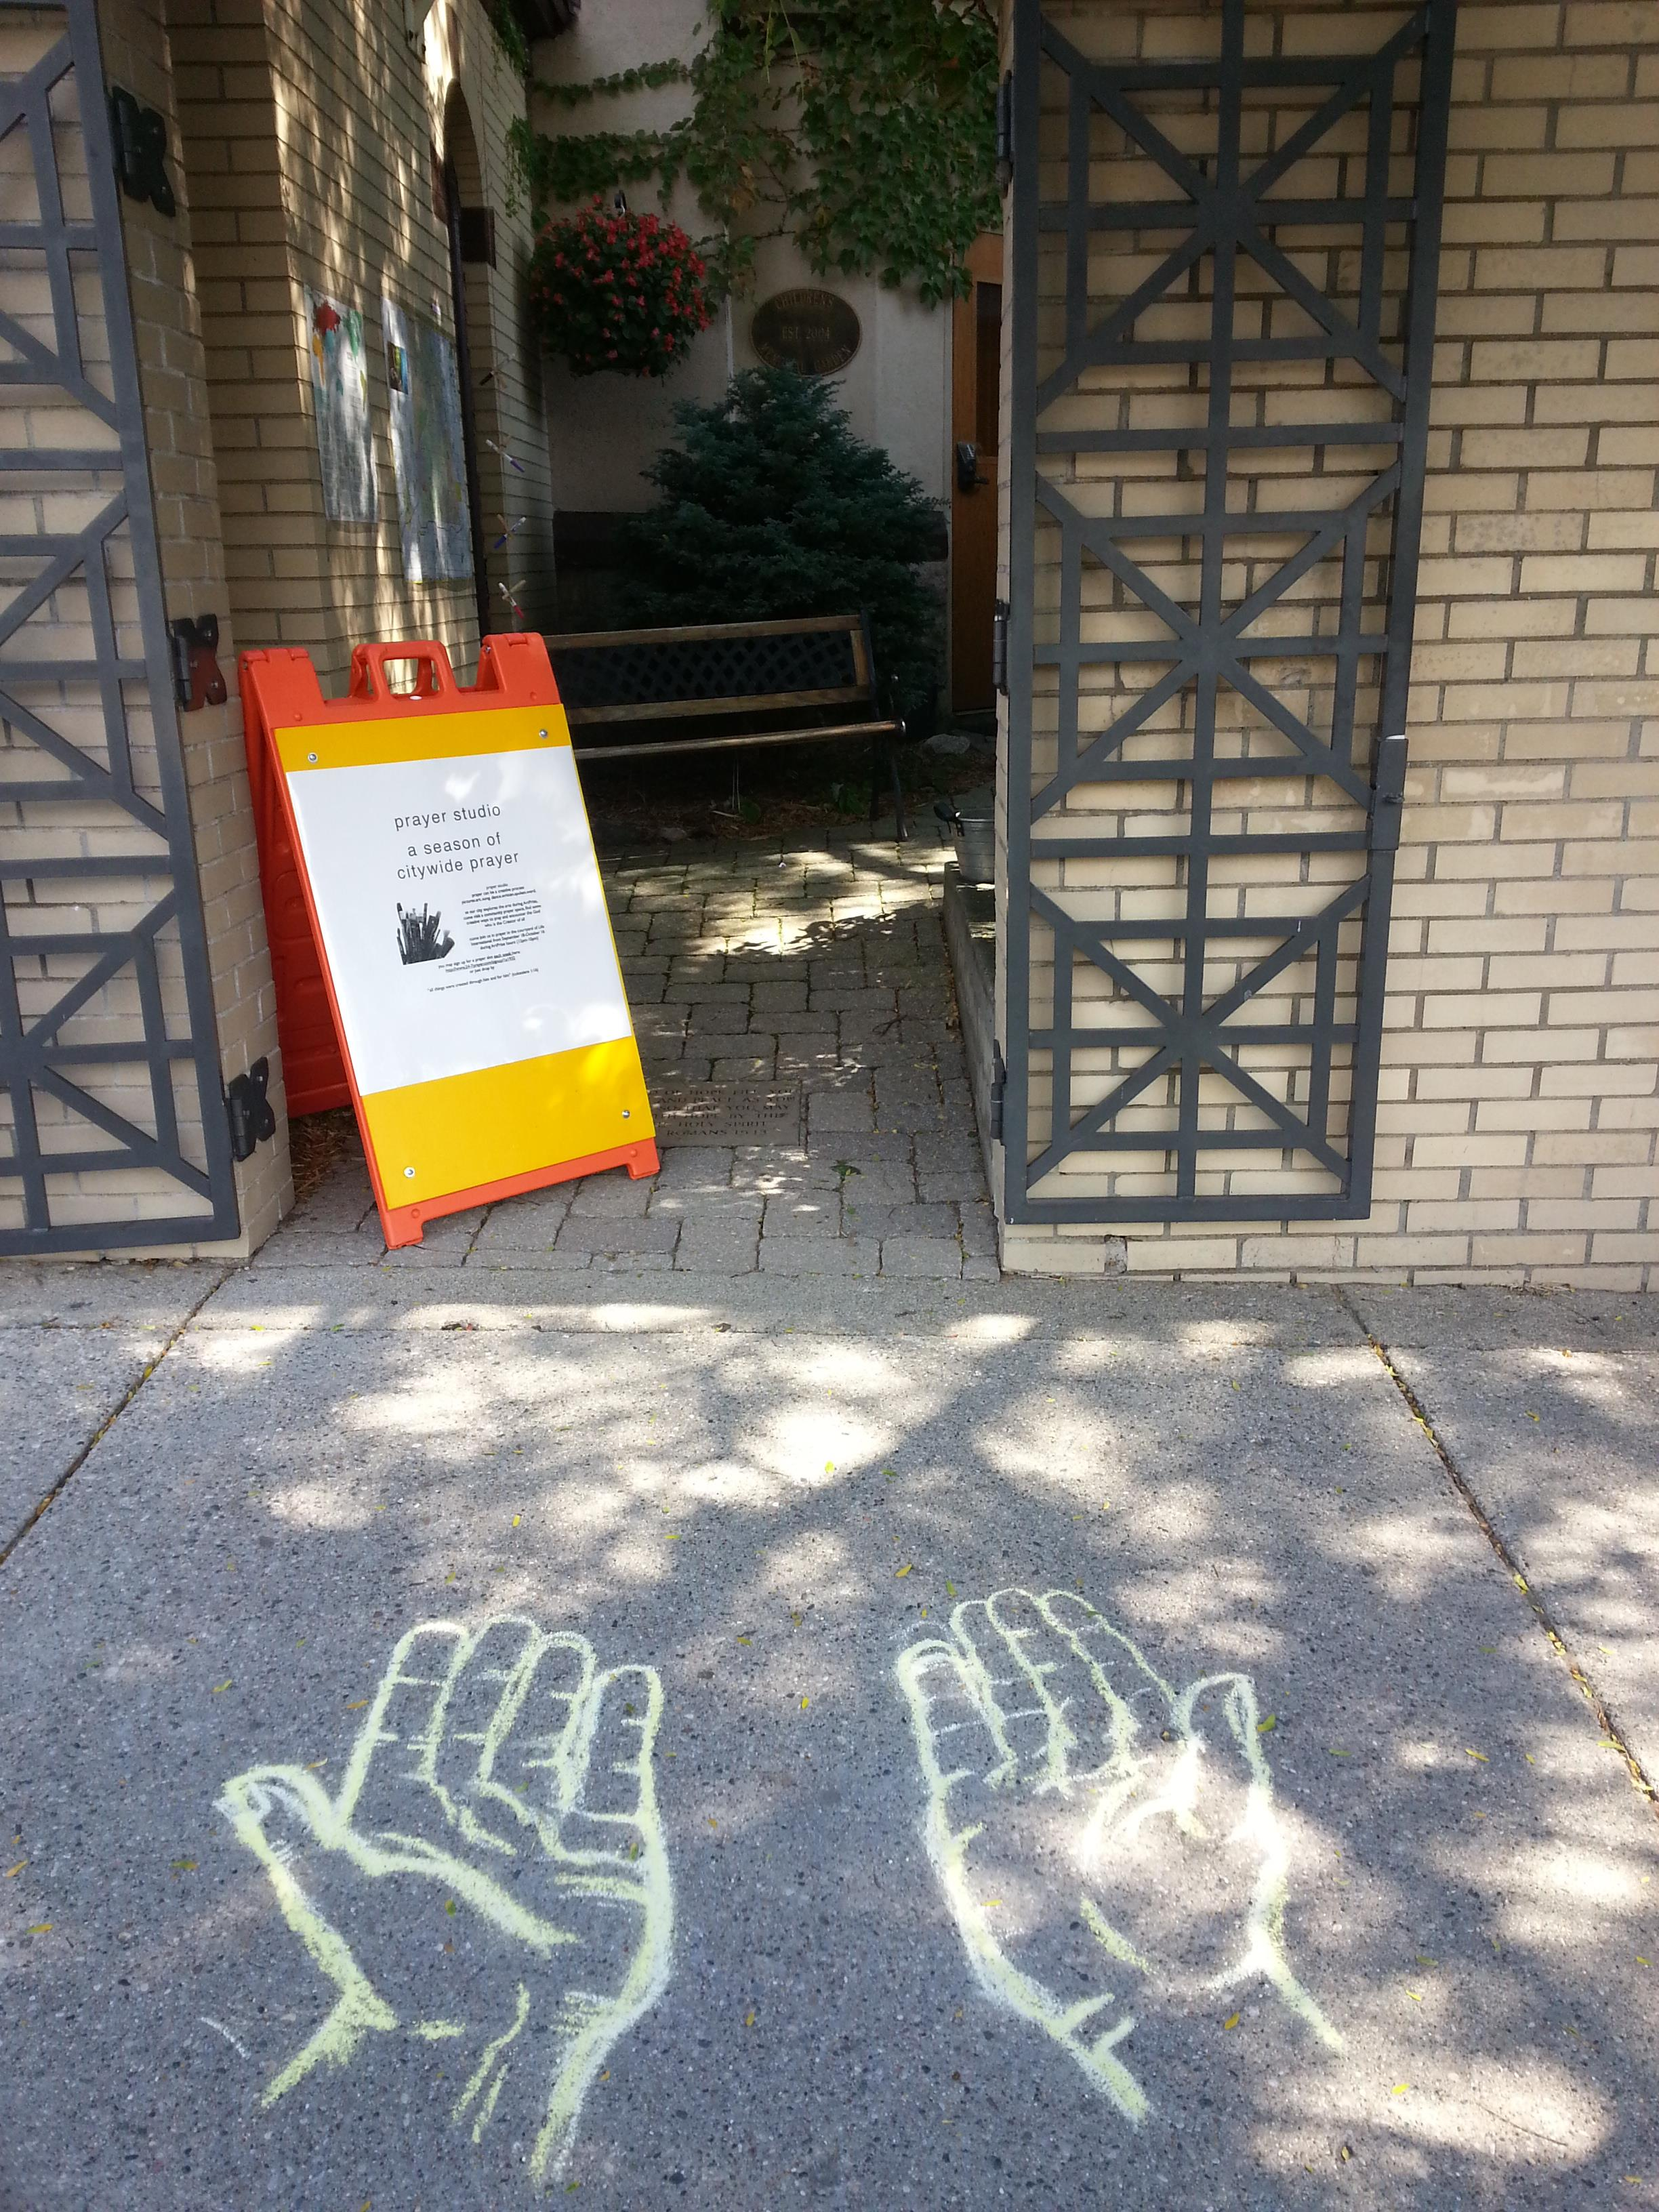 The open, praying hands welcome passersby into the downtown prayer studio.